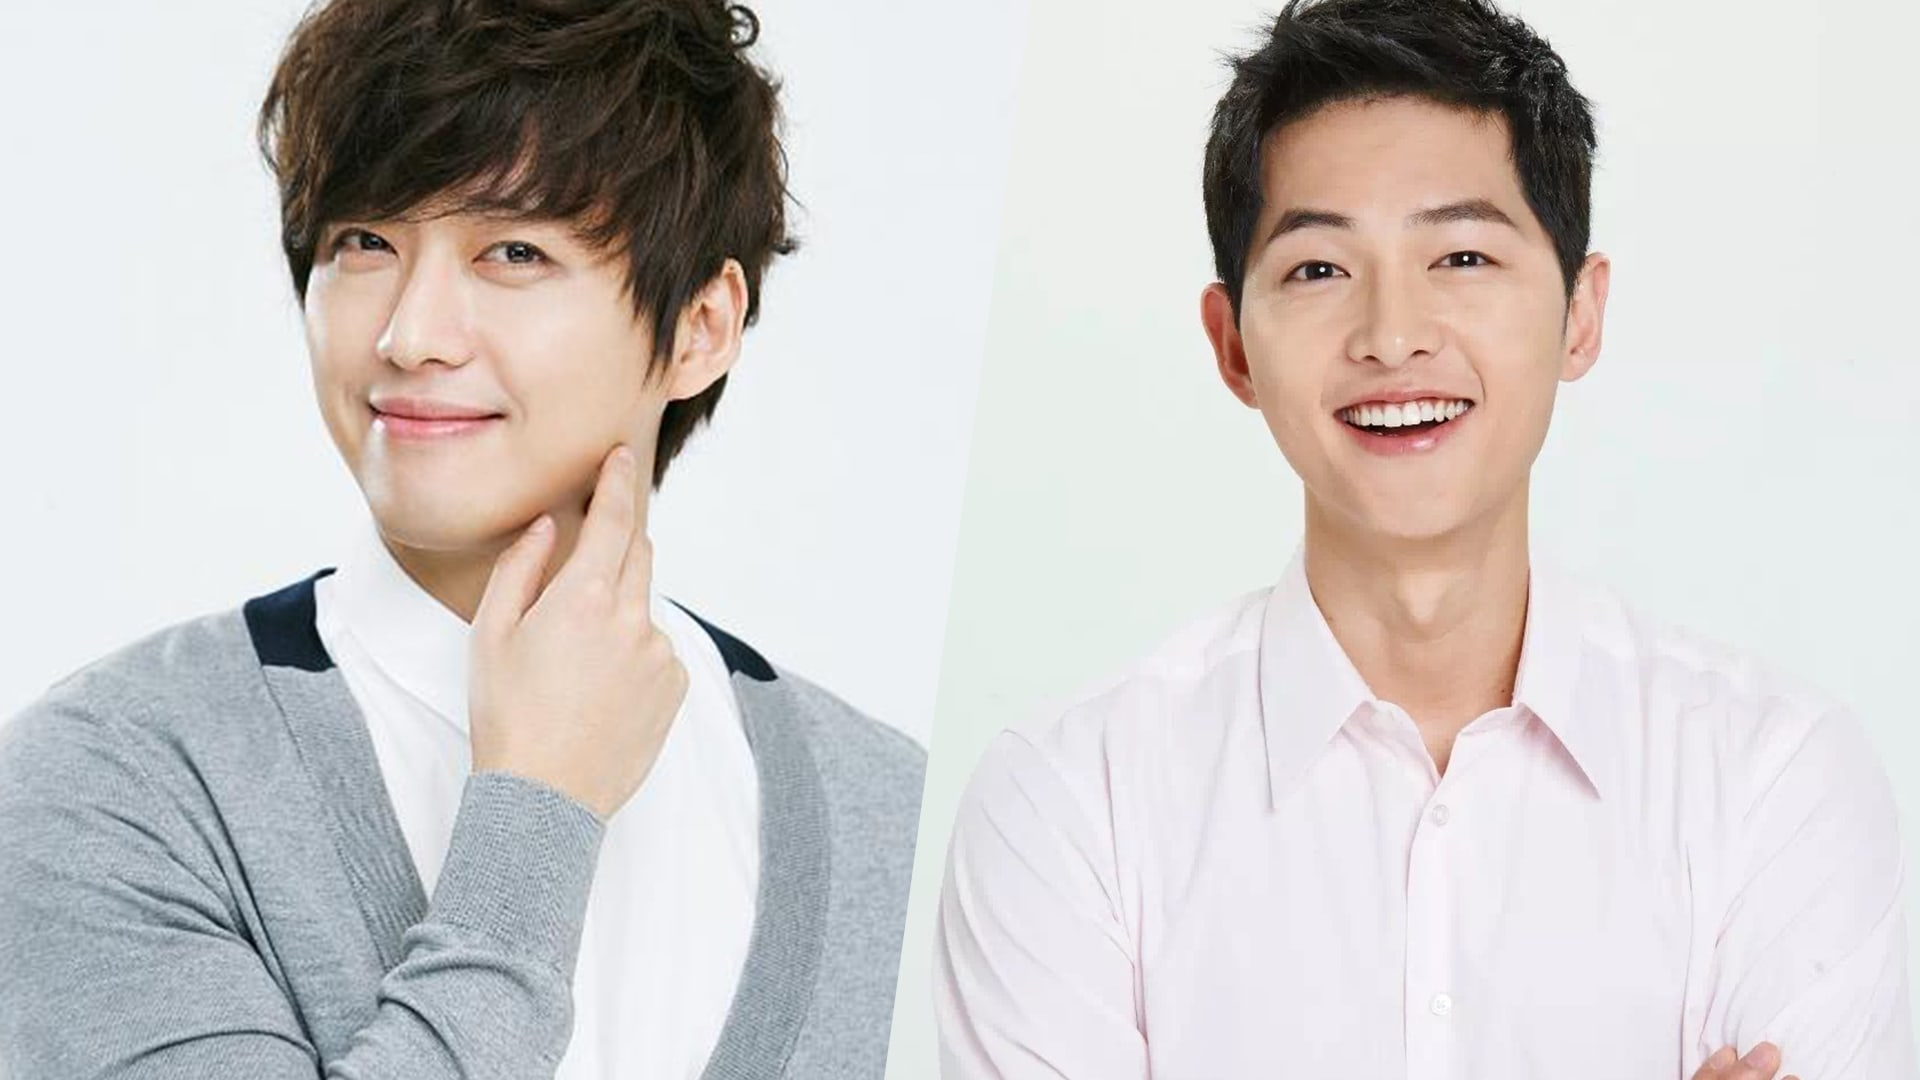 Man To Man Gives Viewers A First Look At Song Joong Ki and Namgoong Mins Cameo Appearances With New Stills